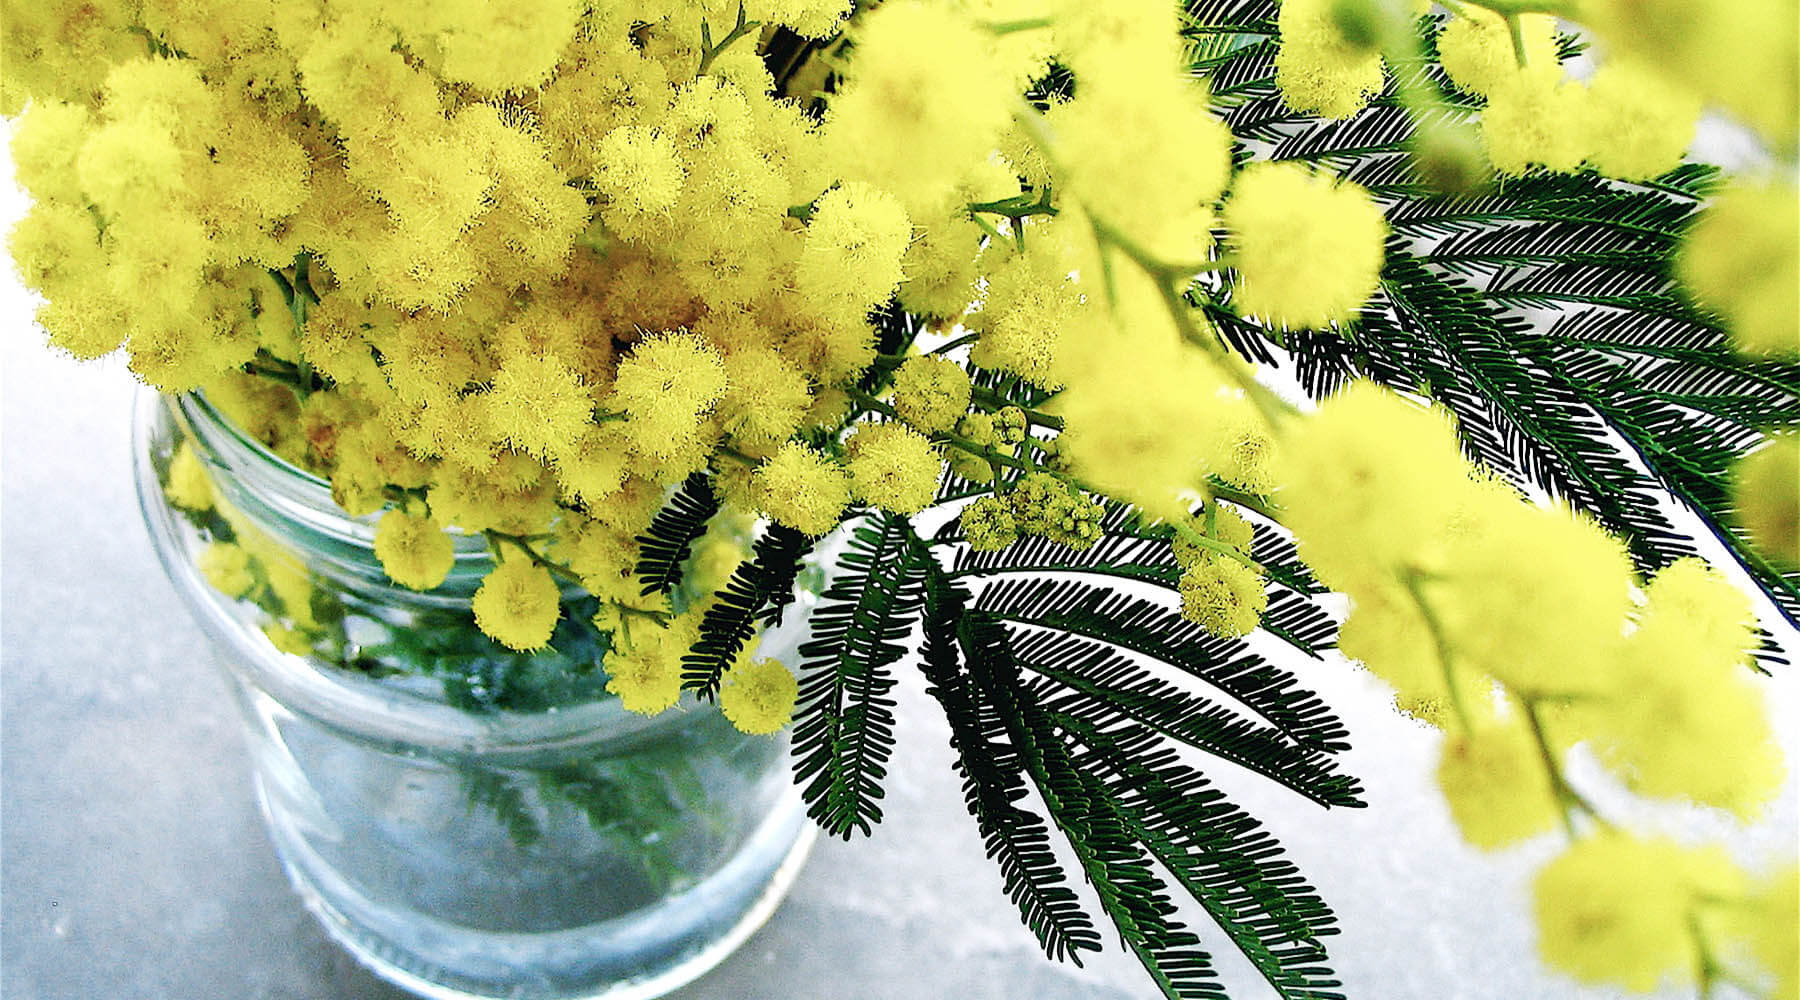 mimosa in skincare and perfume